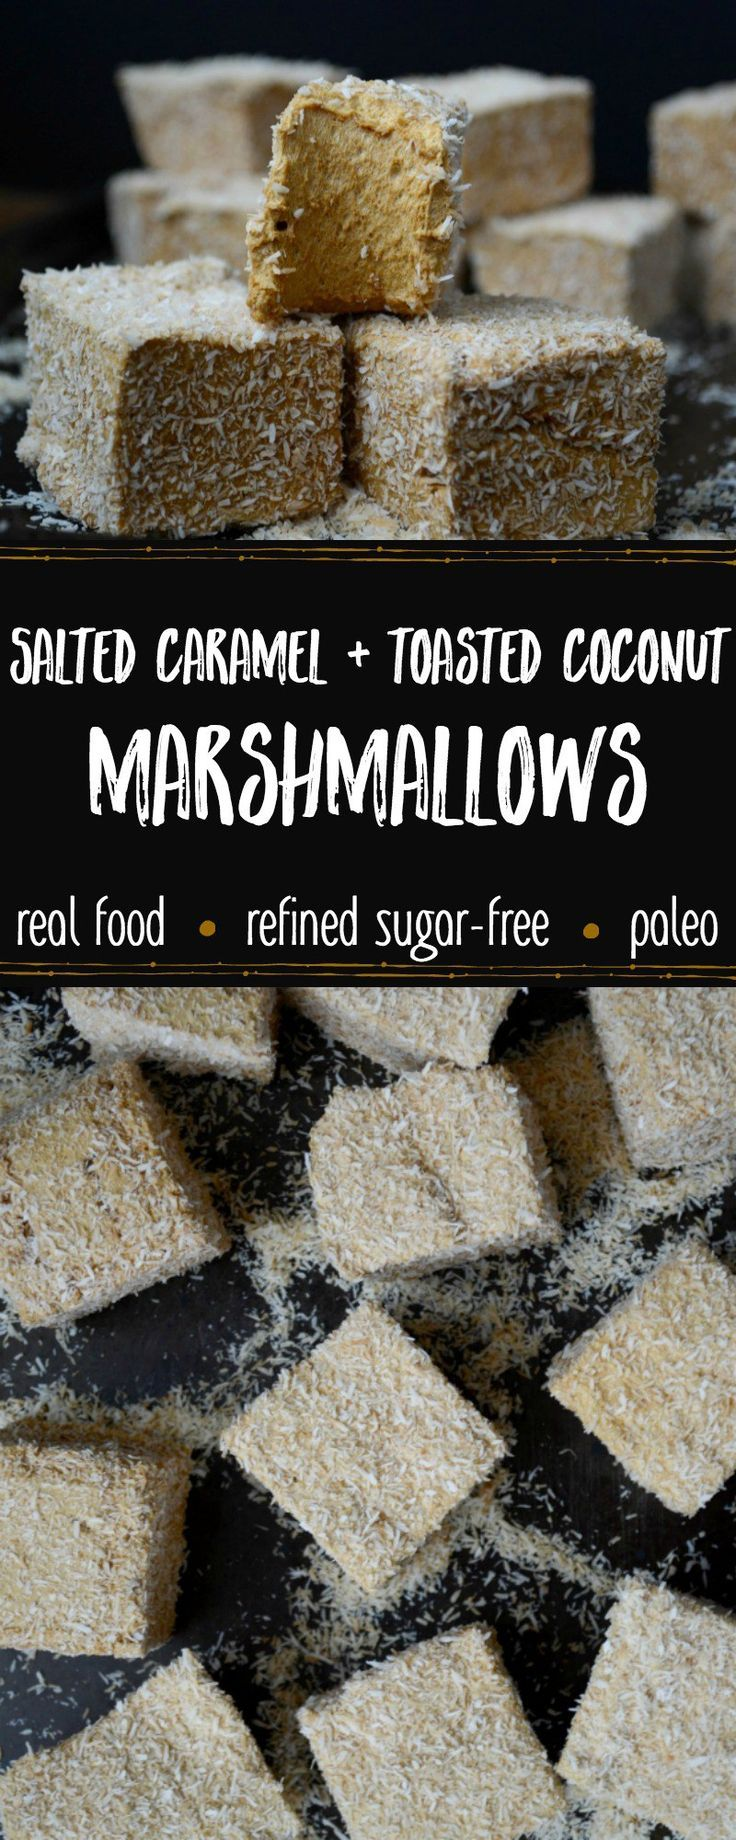 Light, fluffy, and deliciously sticky these Real Food homemade marshmallows have a unique grown-up flavor in a hand-held, kid-friendly treat! Sweetened with low-glycemic coconut syrup, these Salted Caramel & Toasted Coconut Marshmallows are refined sugar-free and Paleo, plus full of nourishing grass-fed gelatin. #allthenourishingthings #homemademarshmallows #toastedcoconutmarshmallows #saltedcaramelmarshmallows #refinedsugarfree #paleomarshmallows #recipeswithgelatin #realfooddesserts